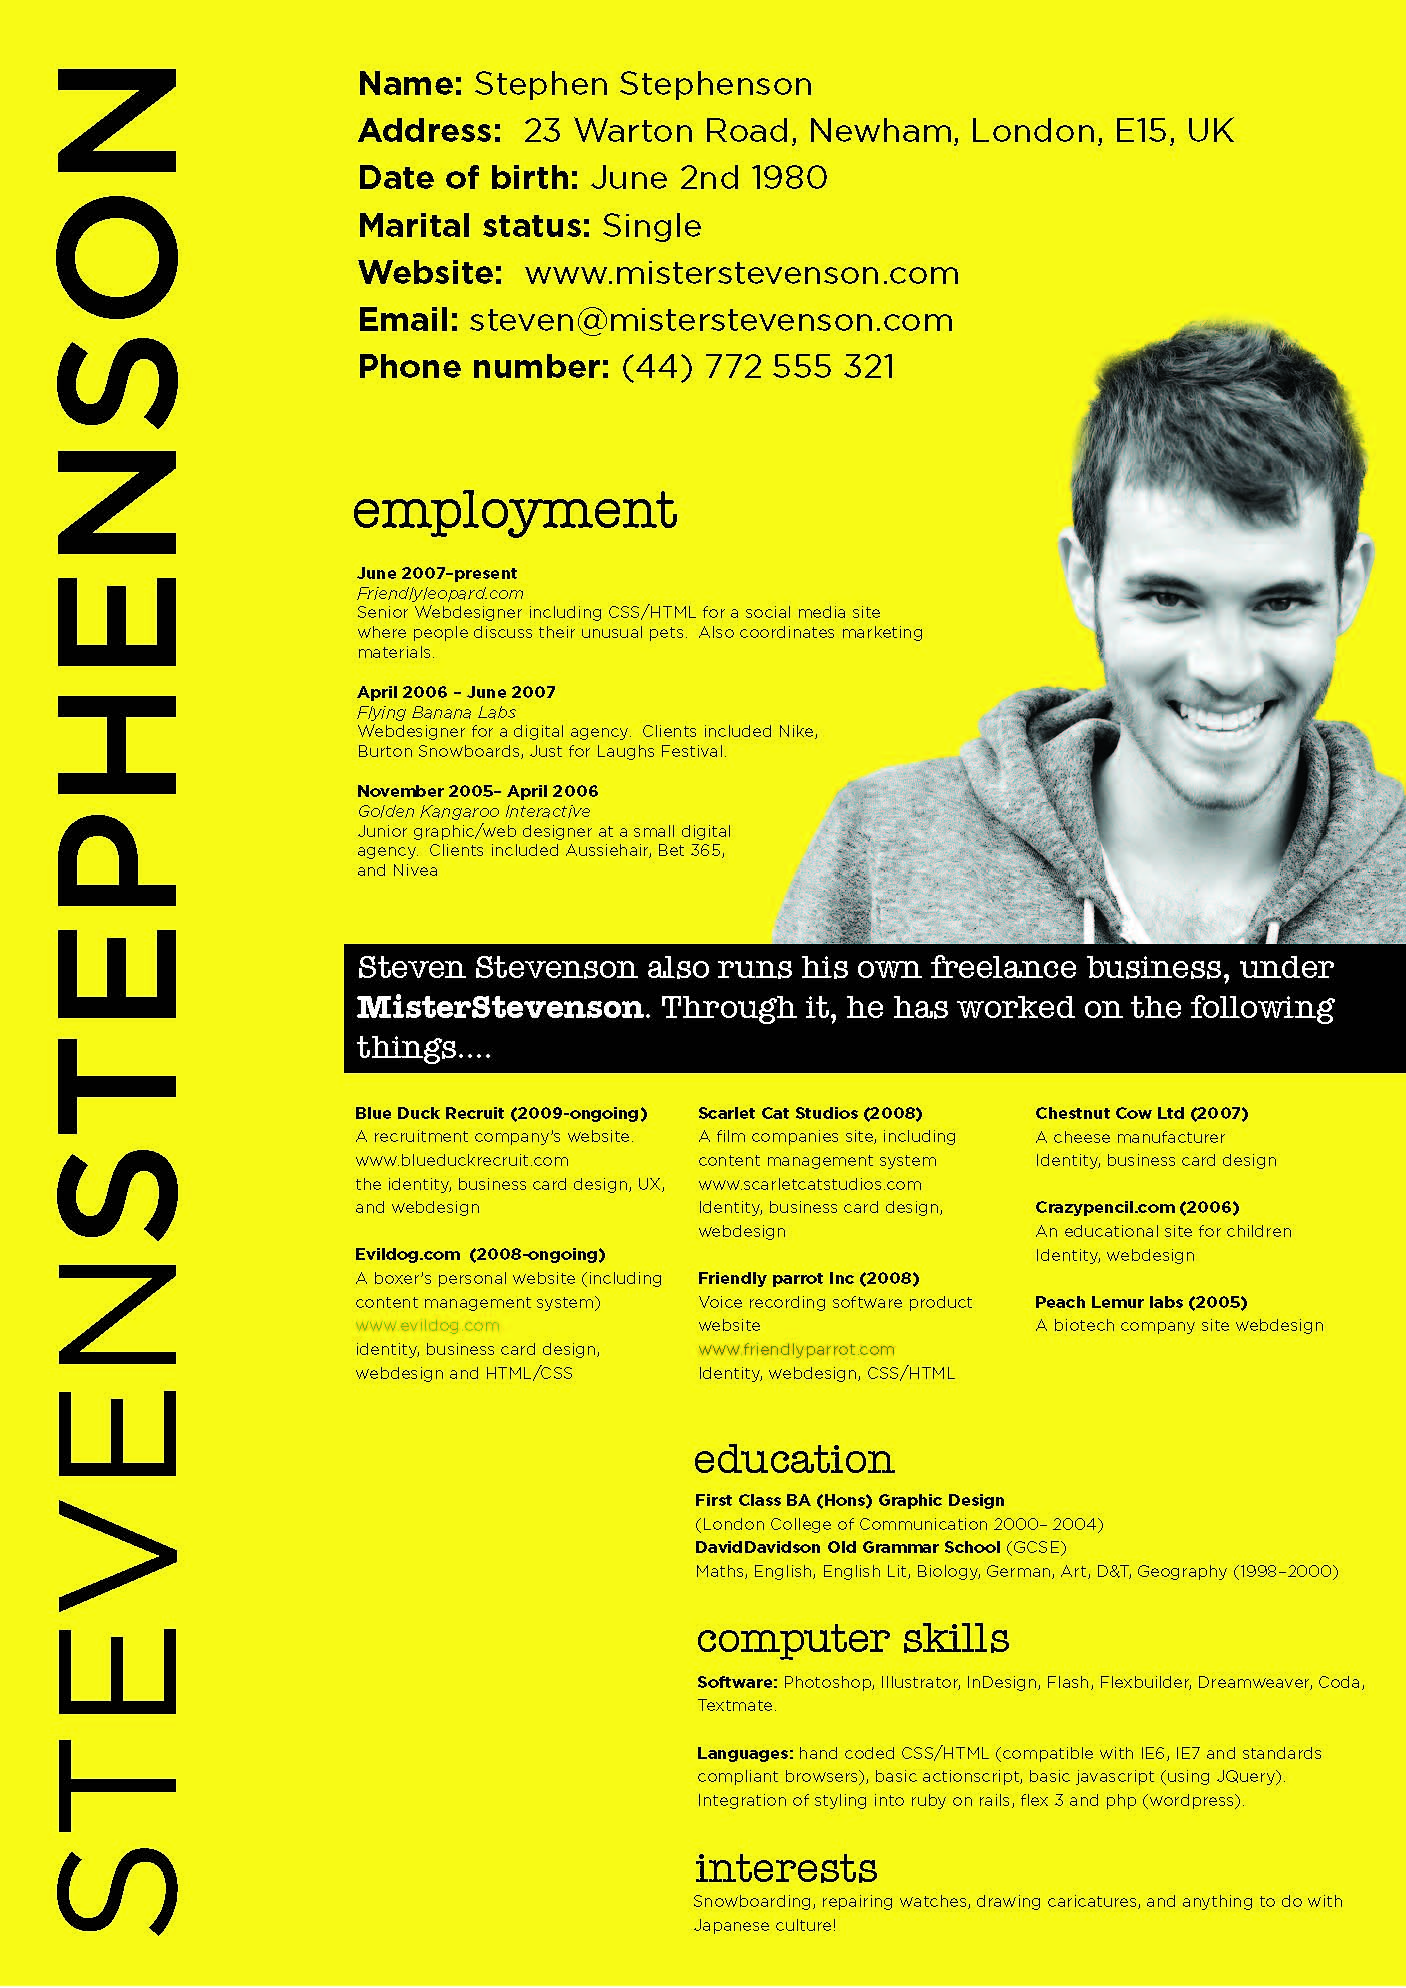 Best Resume Format For 2016 By Steven Stephenson